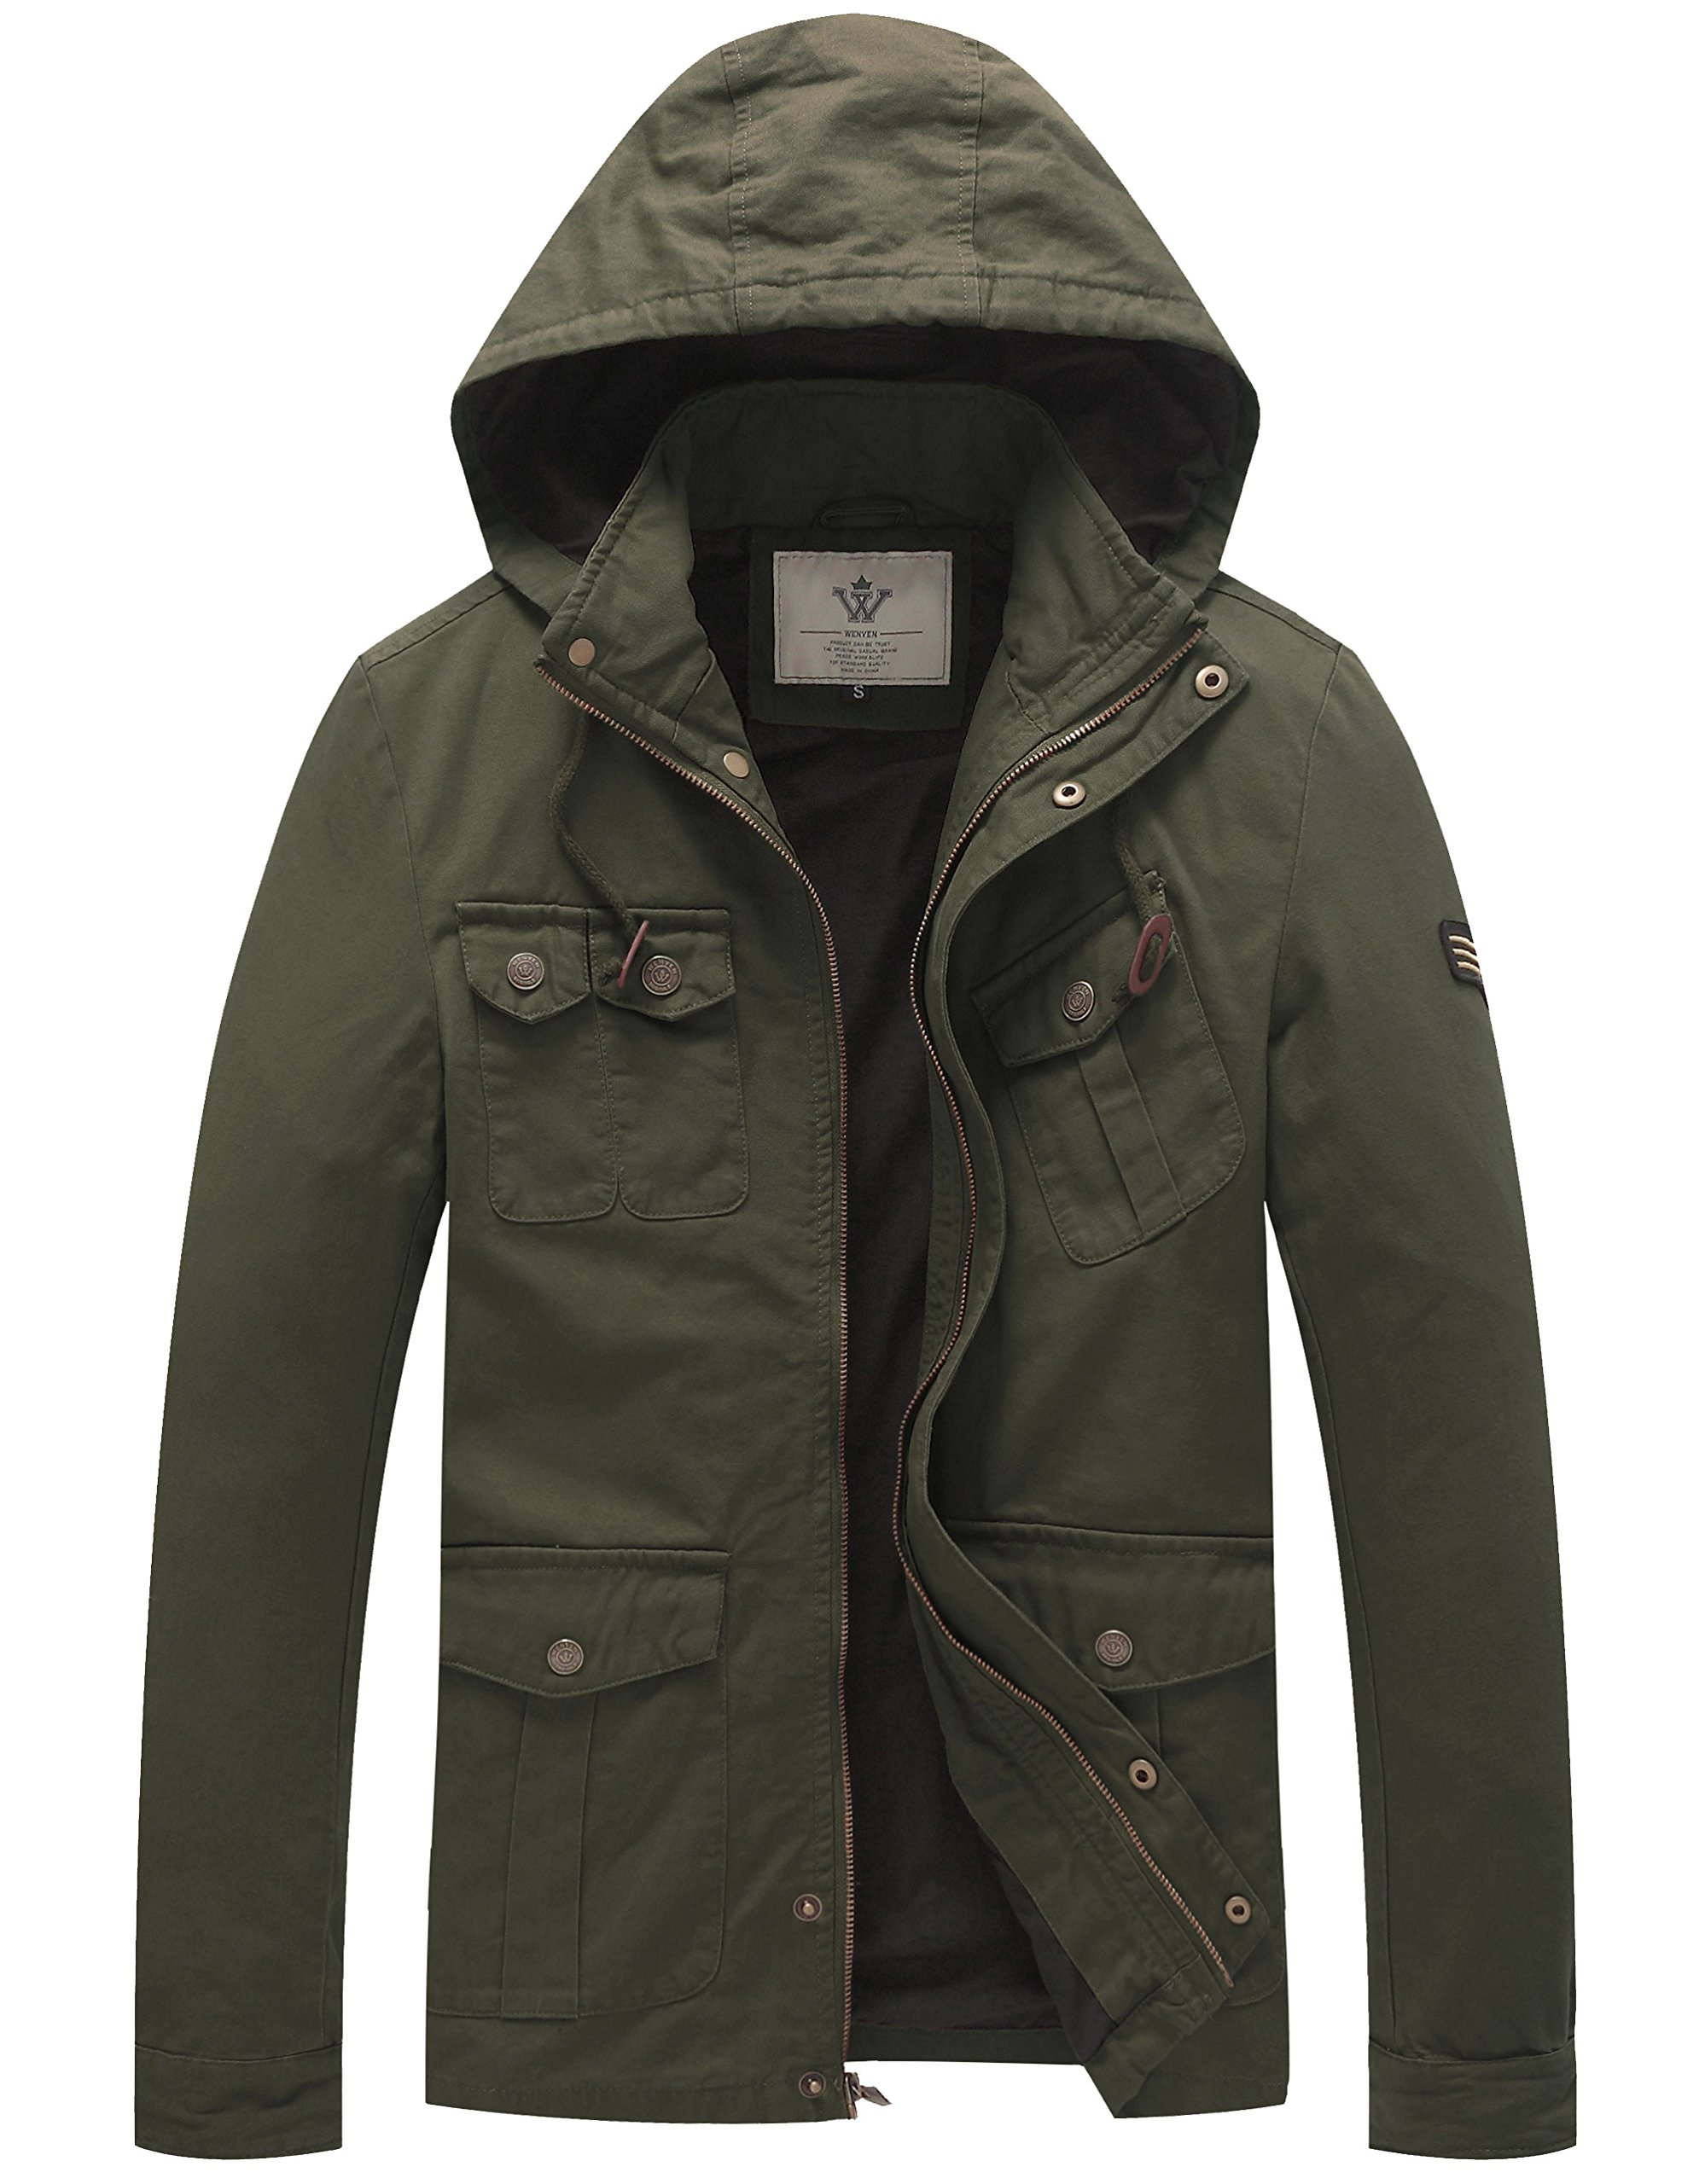 WenVen Men's Hooded Cotton Military Jackets (Military Green, Small)